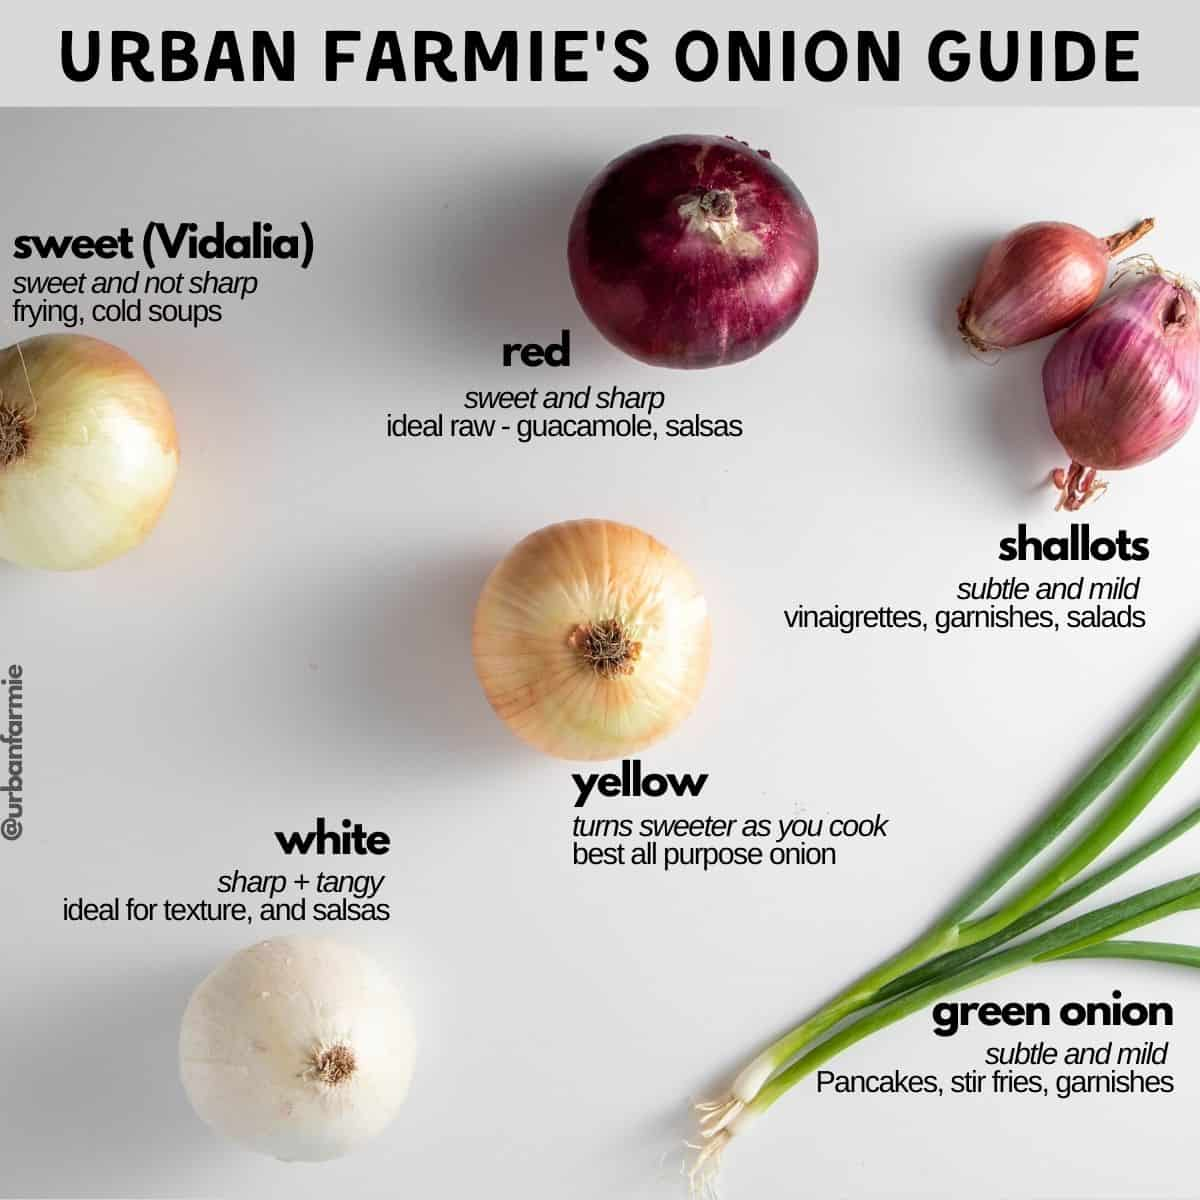 Labeled infographic showing types of onions and their uses